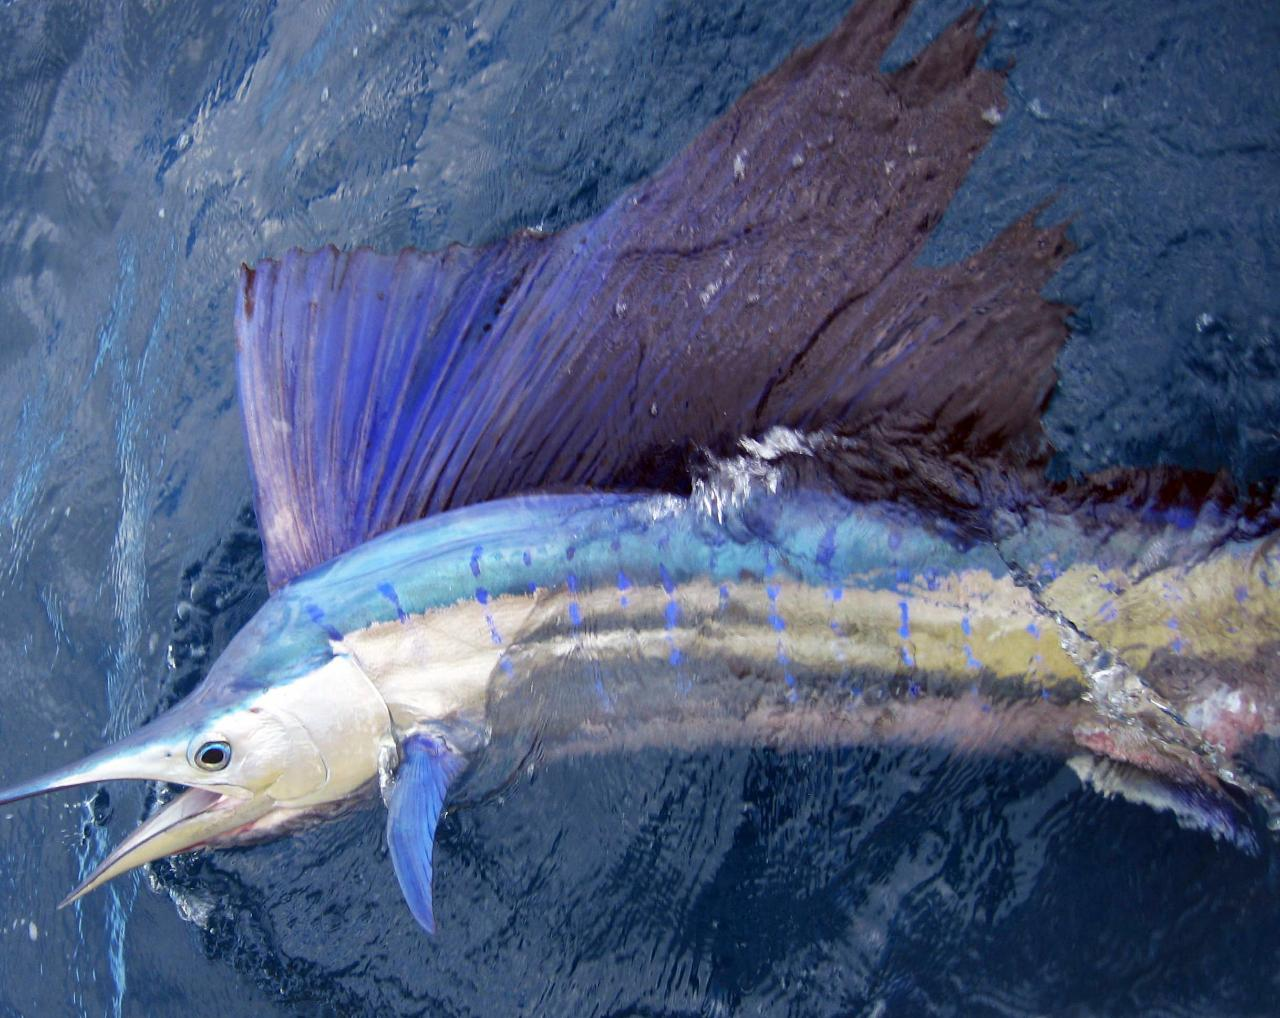 Private Group Sport Fishing Charter - Full Day (max 4 people) 50% DEPOSIT OPTION